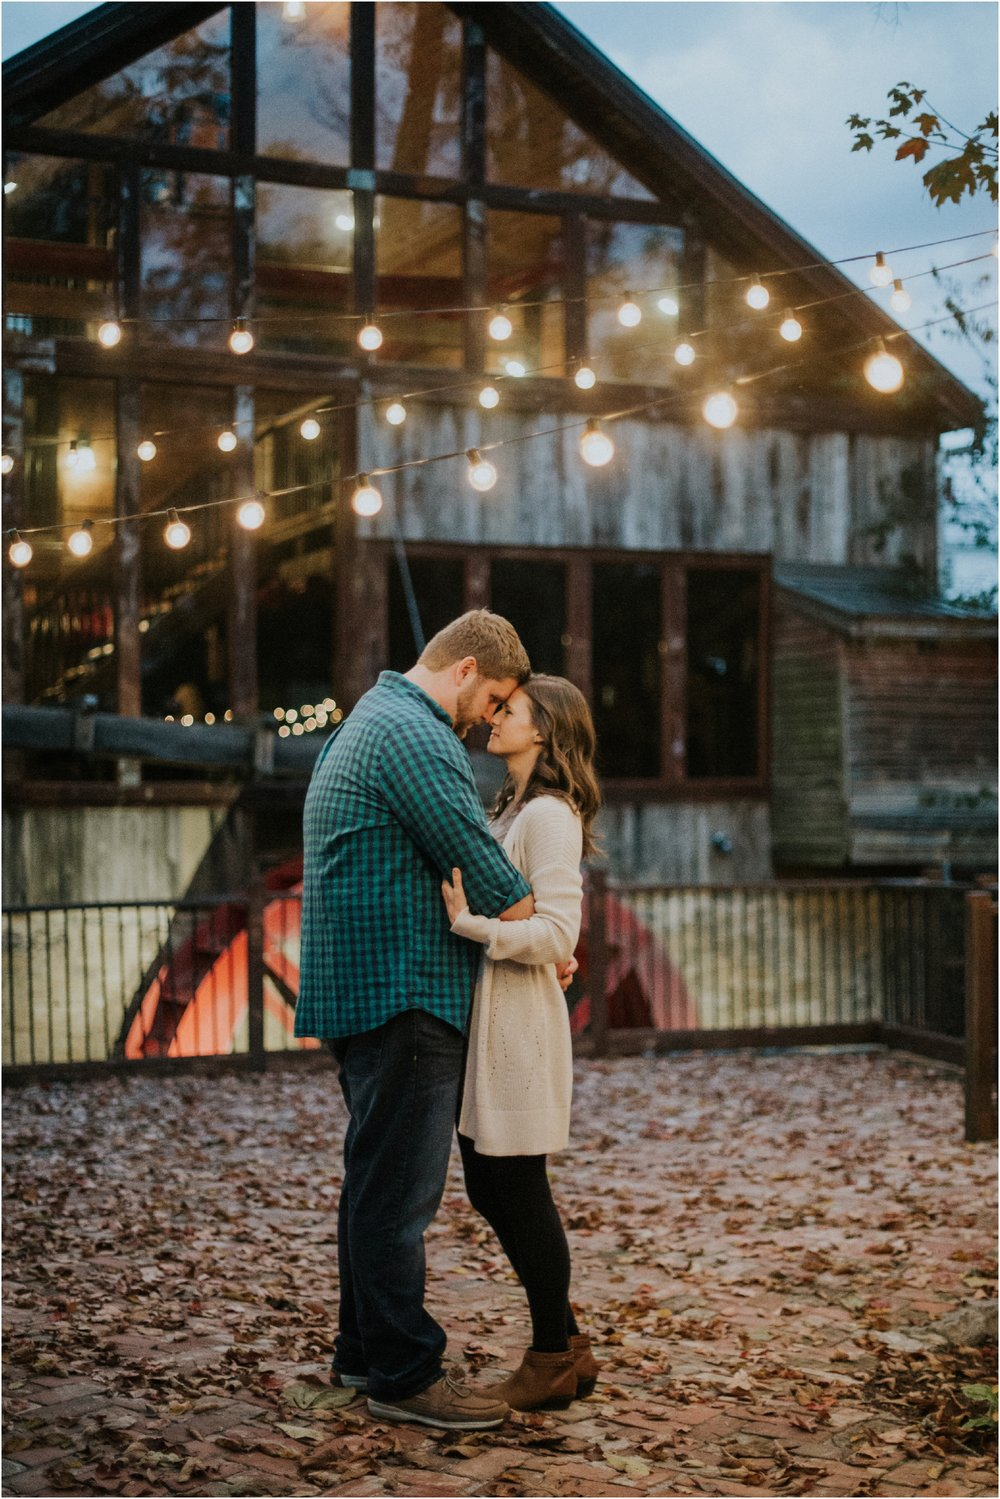 katy-sergent-millstone-limestone-tn-rustic-fall-engagement-session-adventurous-outdoors-intimate-elopement-wedding-northeast-johnson-city-photographer_0042.jpg